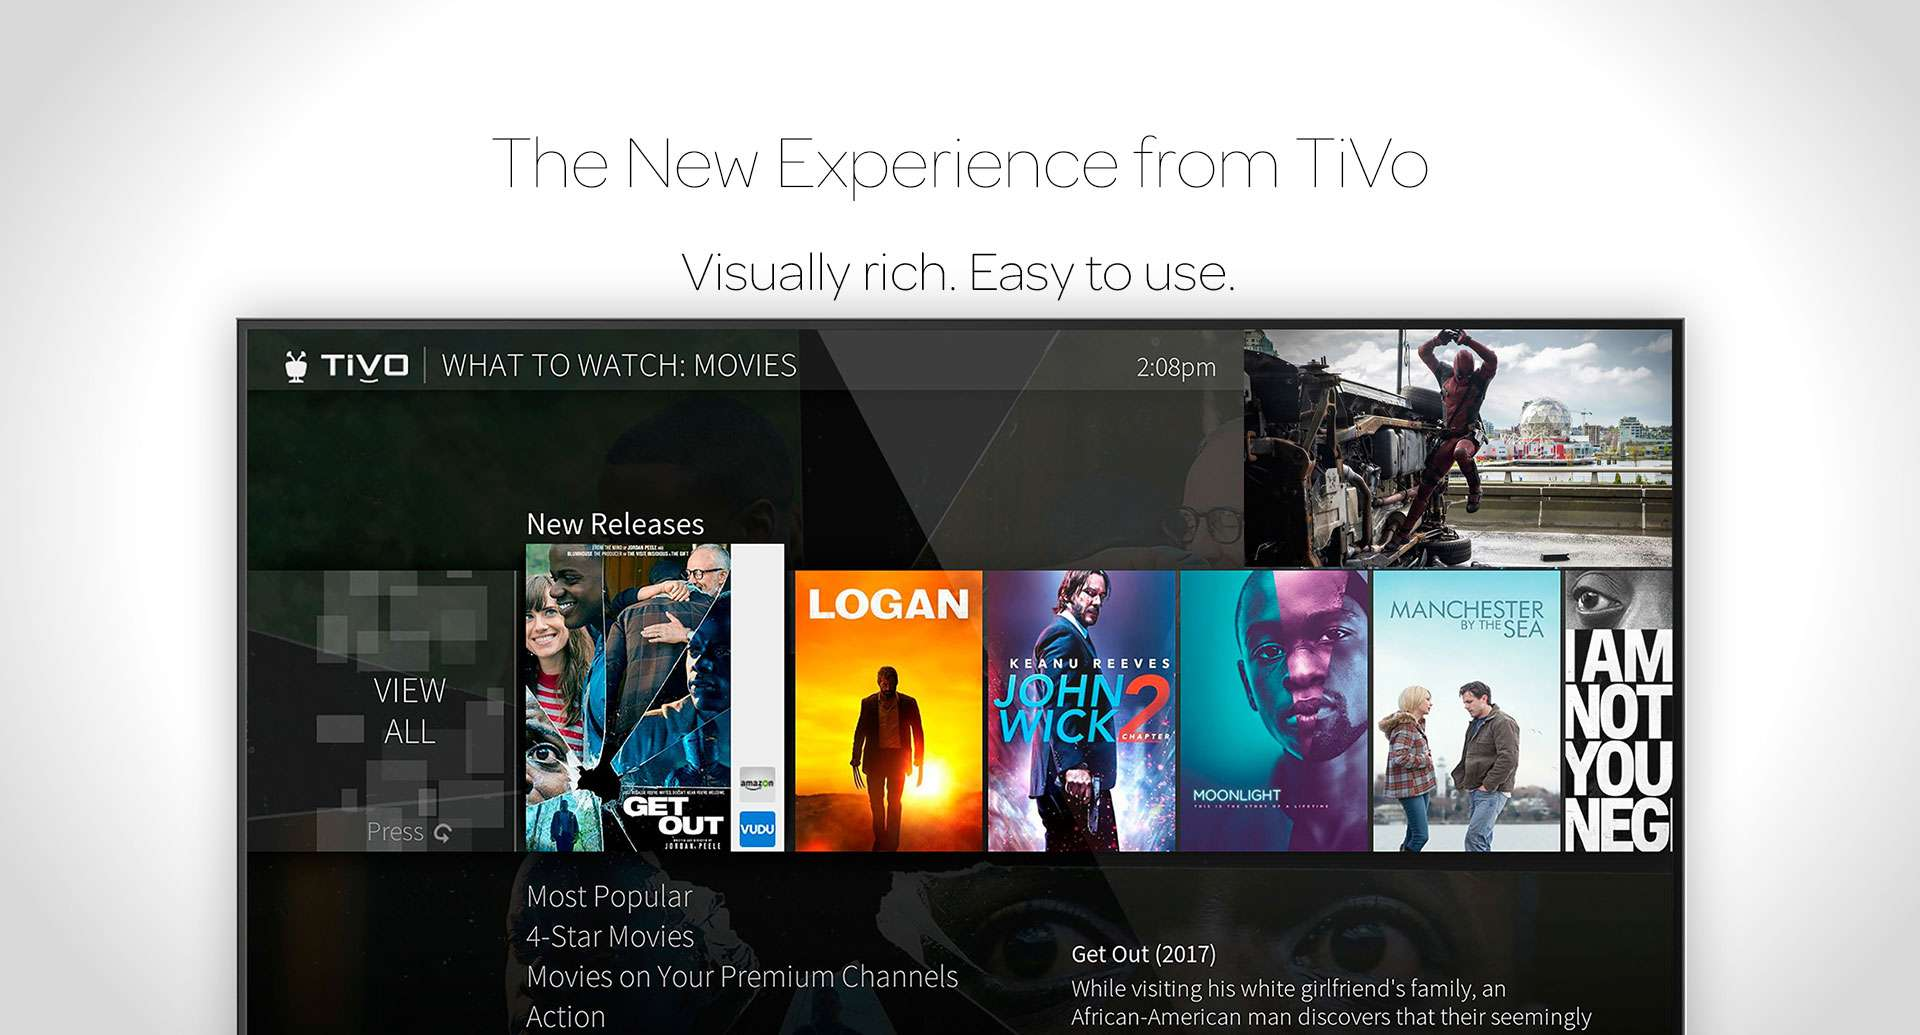 The New Experience from TiVo. Visually rich. Easy to use.